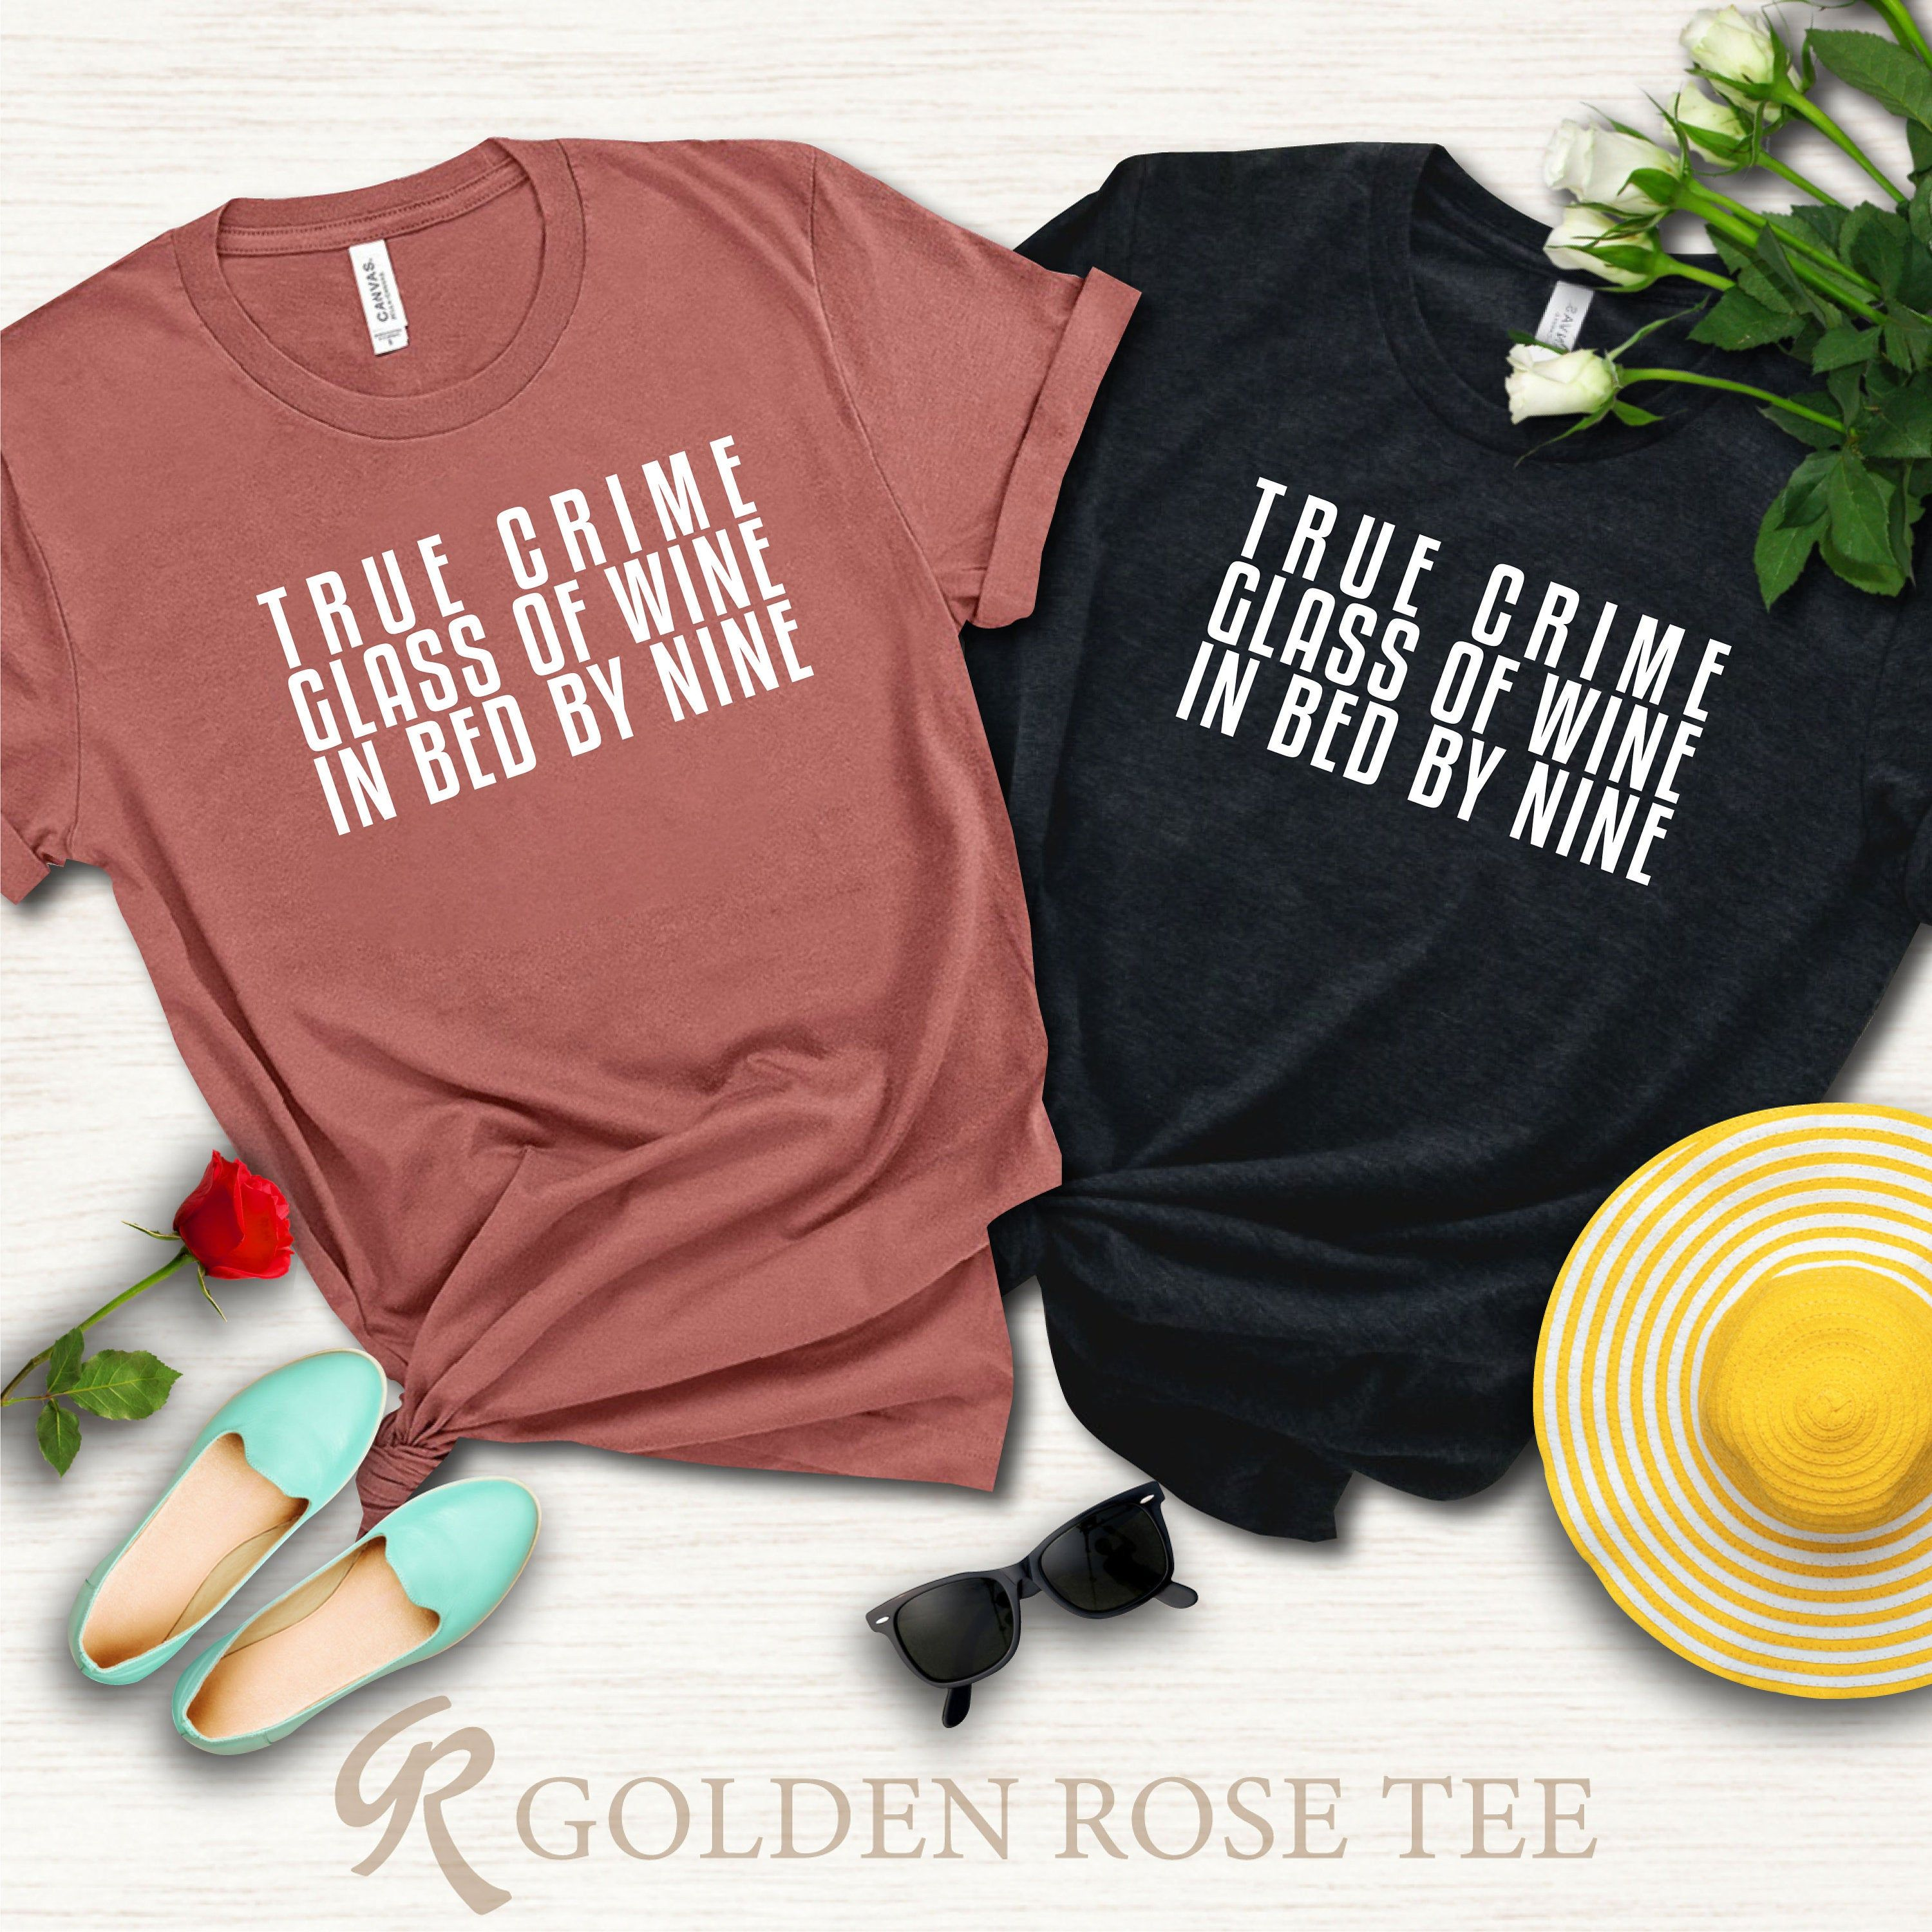 True crime glass of wine in bed by nine shirt, true crime shirt, funny wine tee, funny true crime tee, sarcastic shirt, true crime gift tee